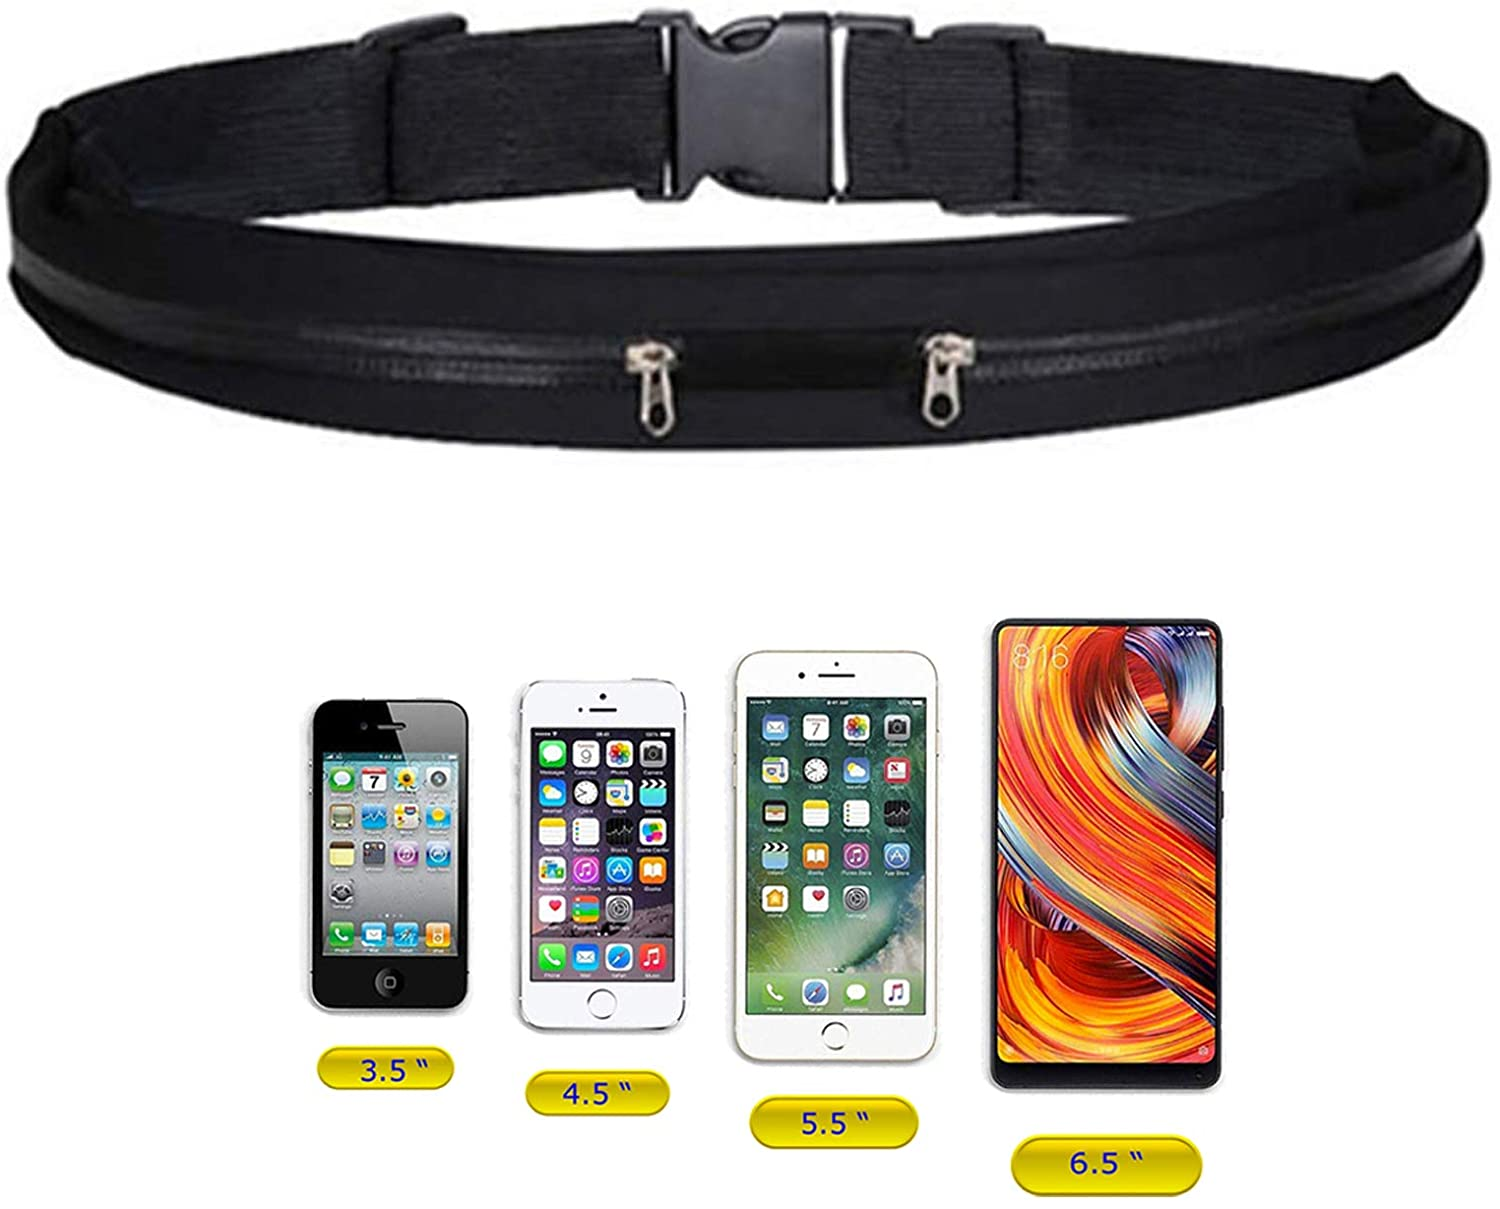 Lupo Running Belt Phone Holder Bag – Dual Pocket Expandable Adjustable Water Resistant Waist Pouch Pack - for Fitness Jogging Sport Cycling Hiking Dog Walking - fits All Mobile Phones